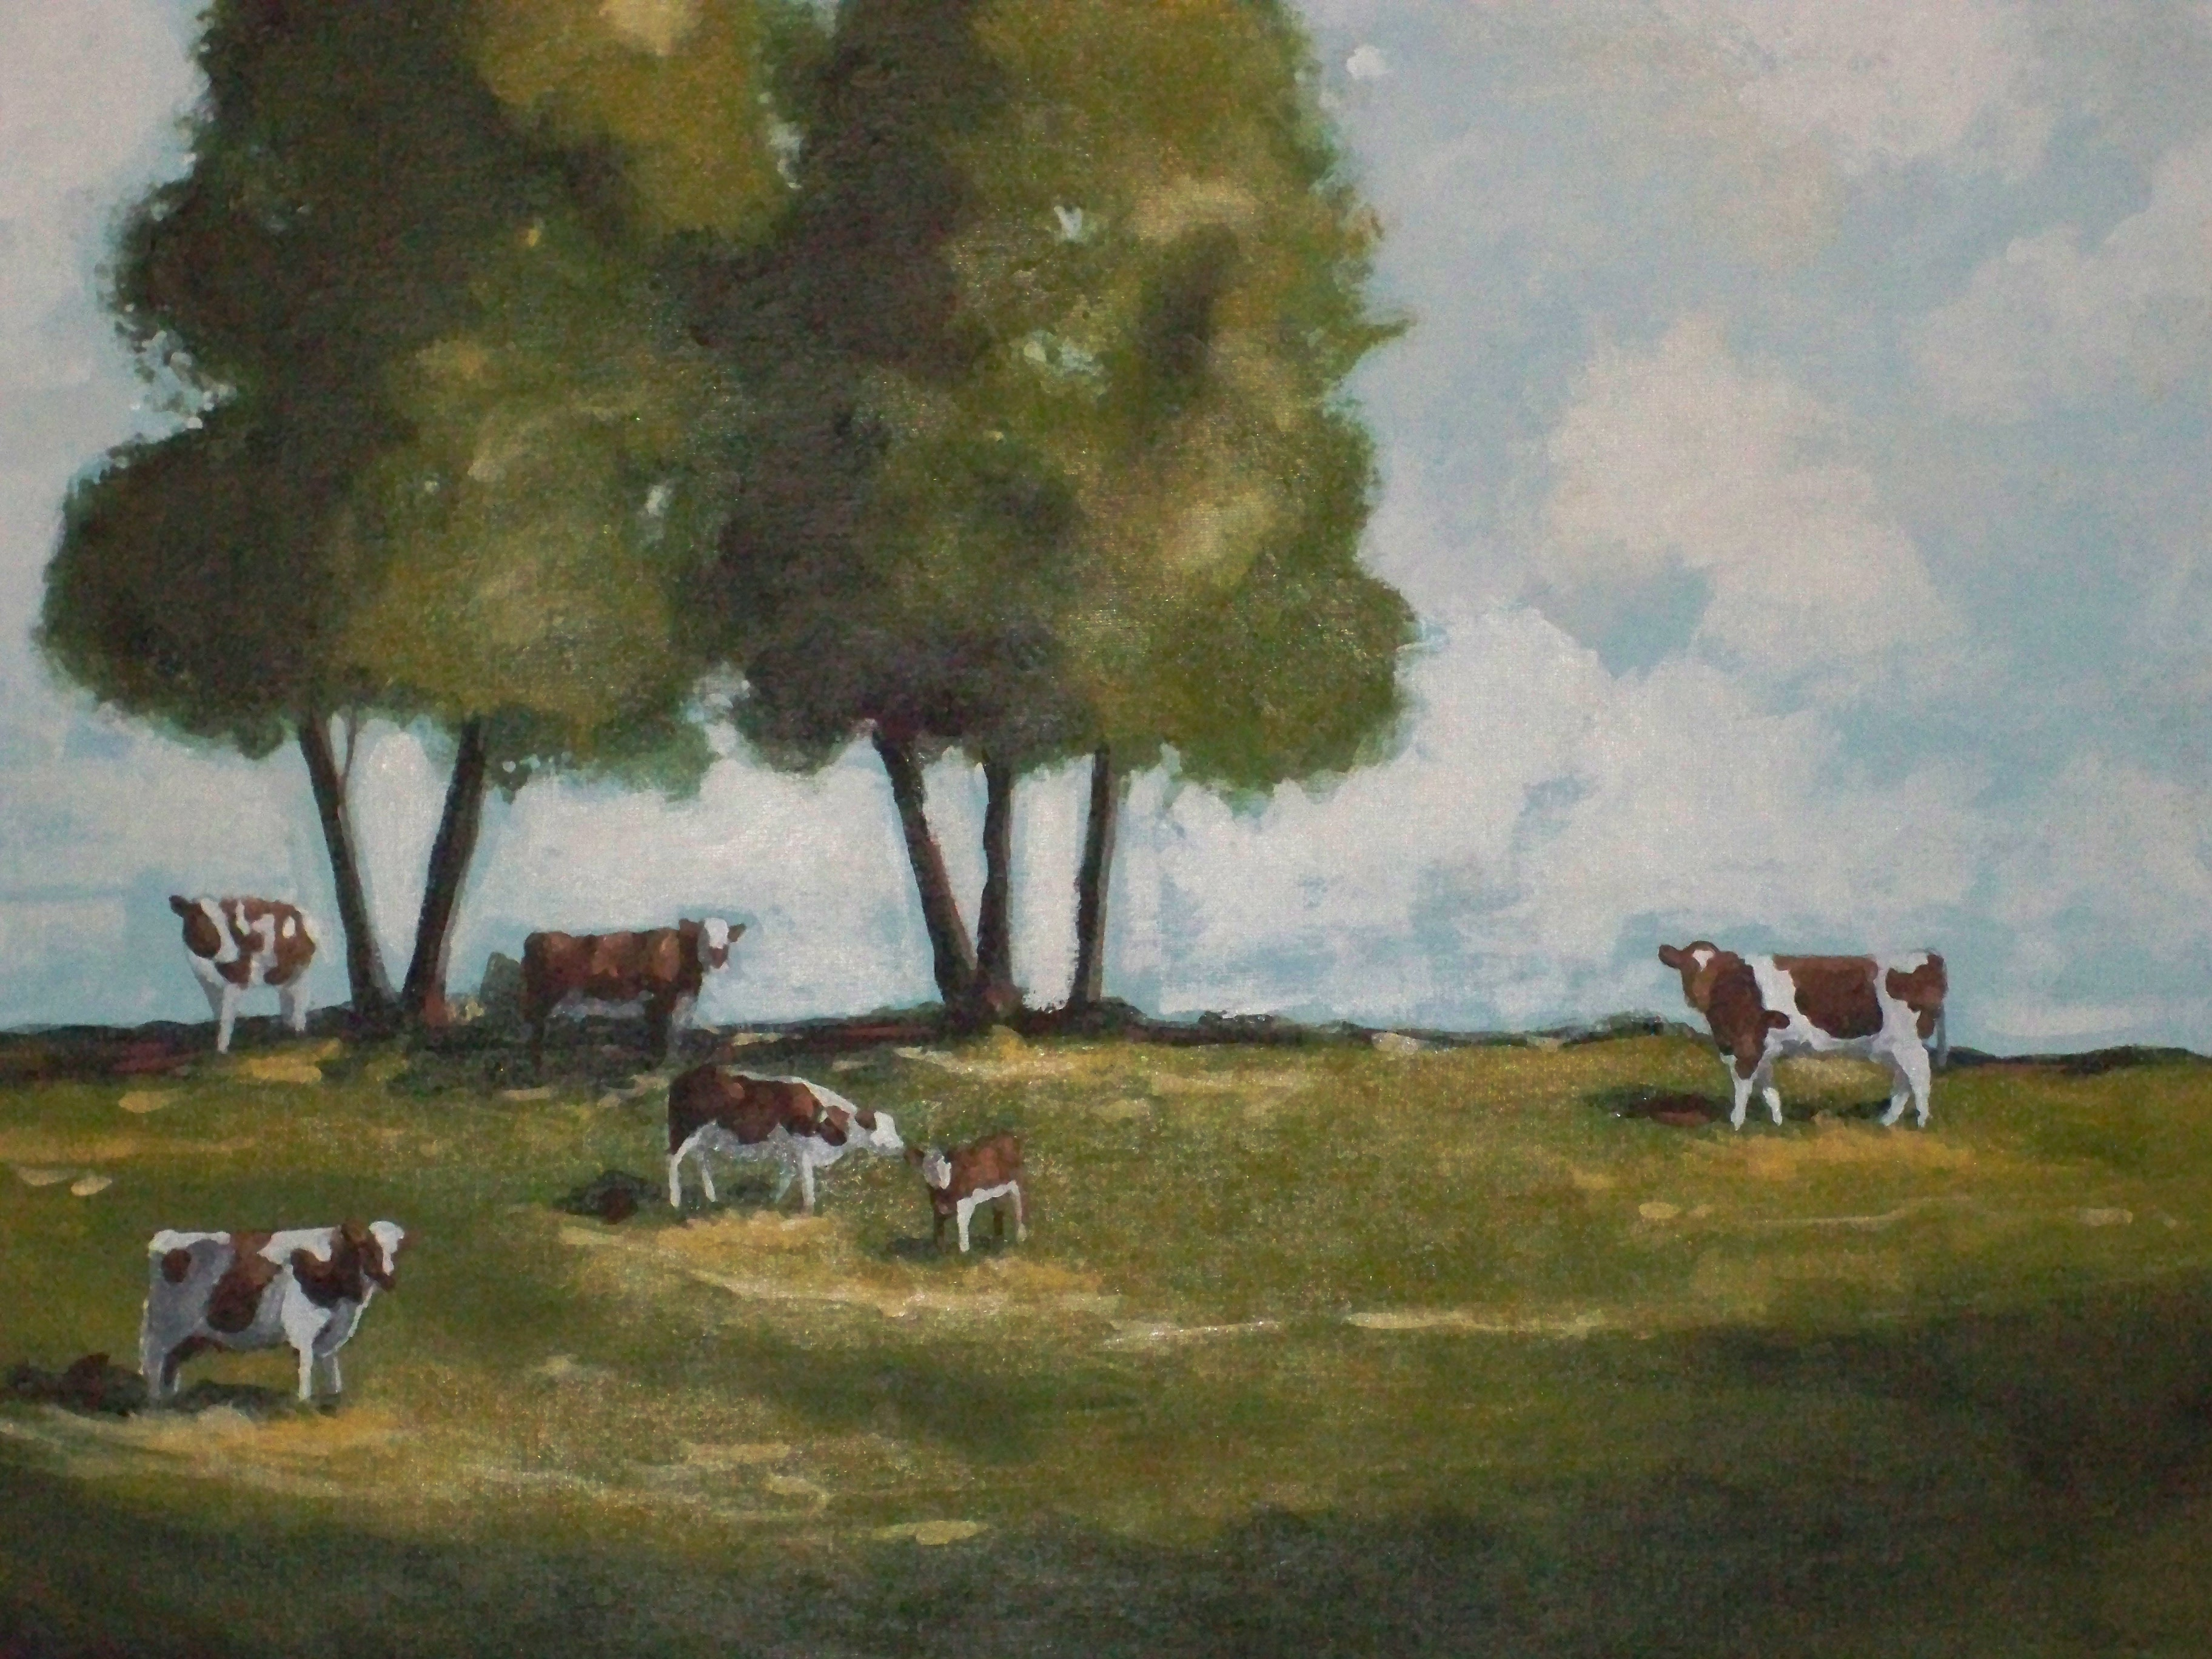 Murals By Marg Cows